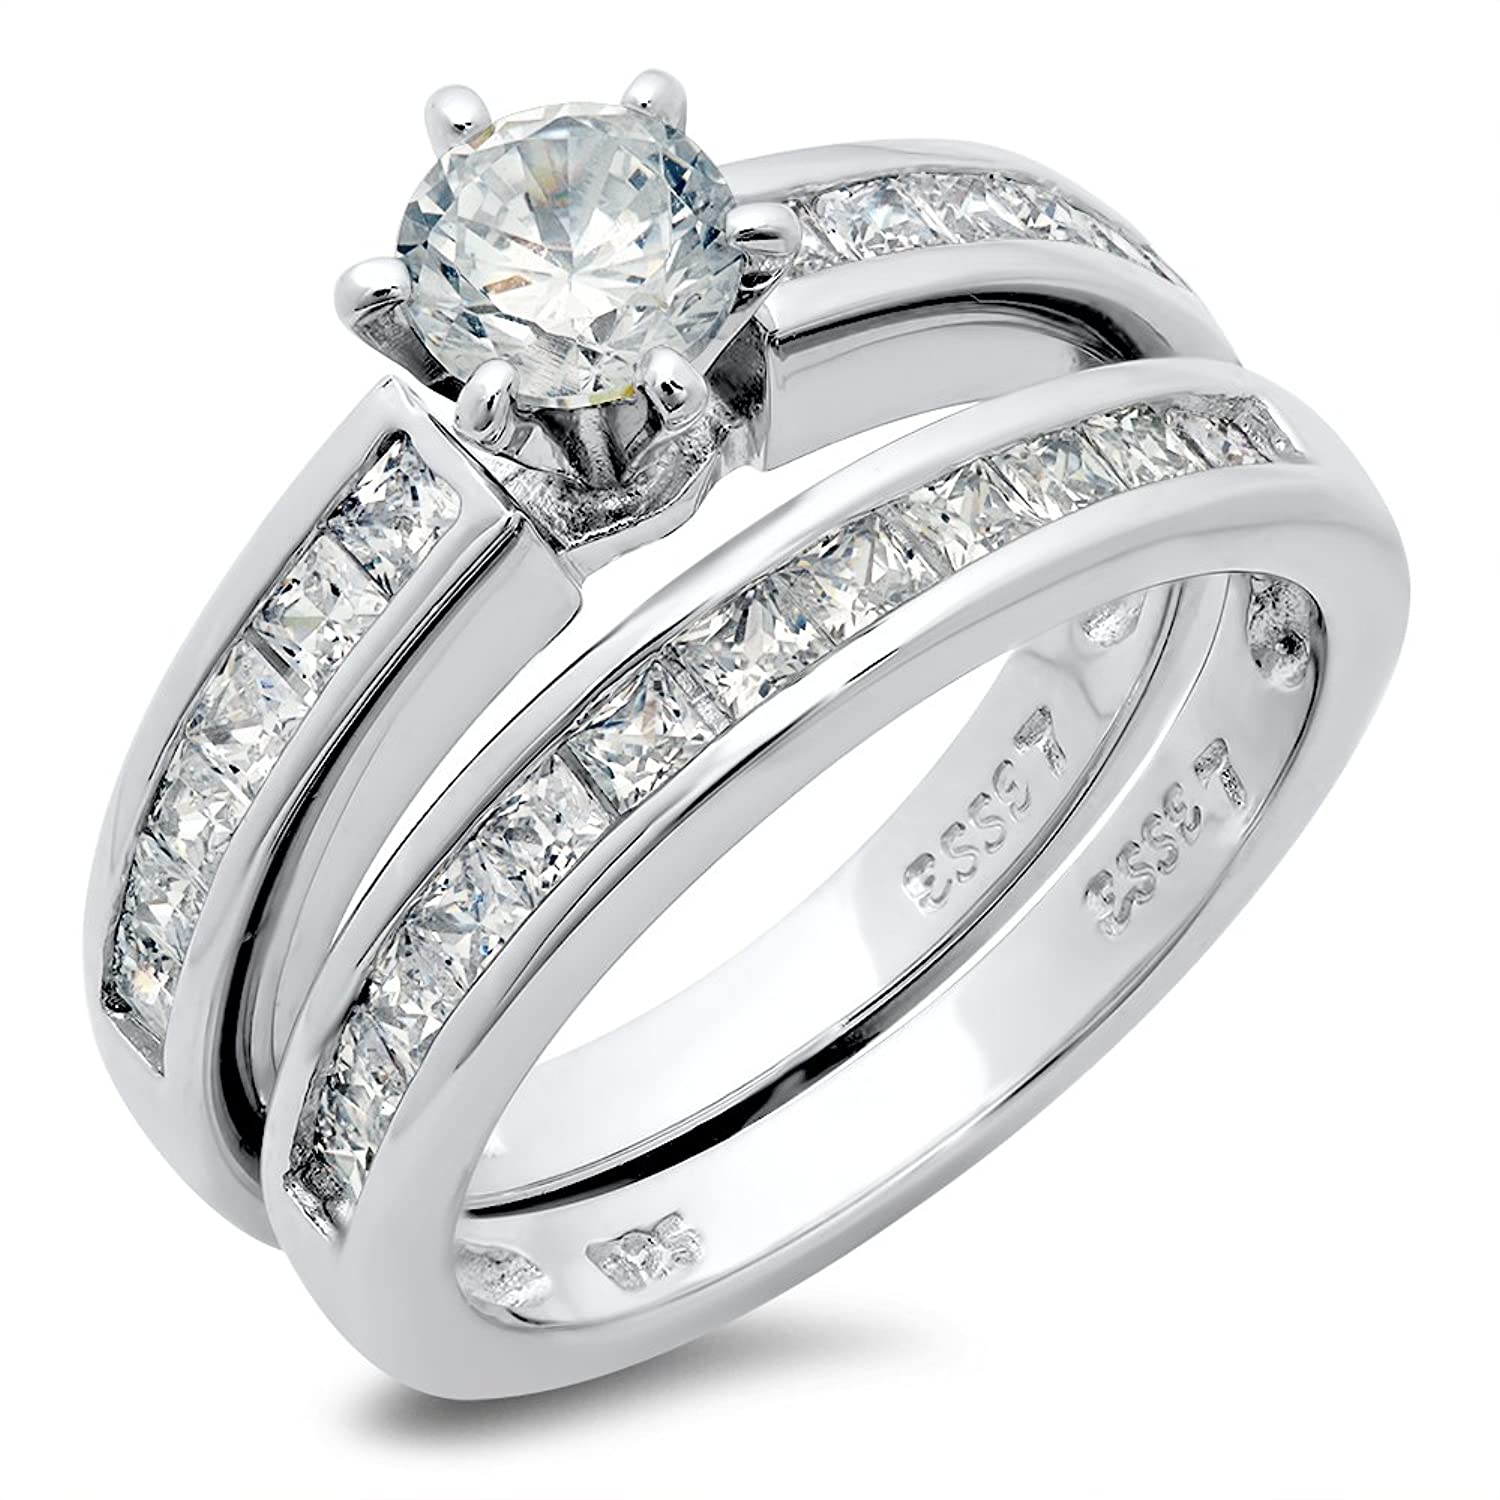 Inspirational Wedding Rings Kevin Jewelers Wedding